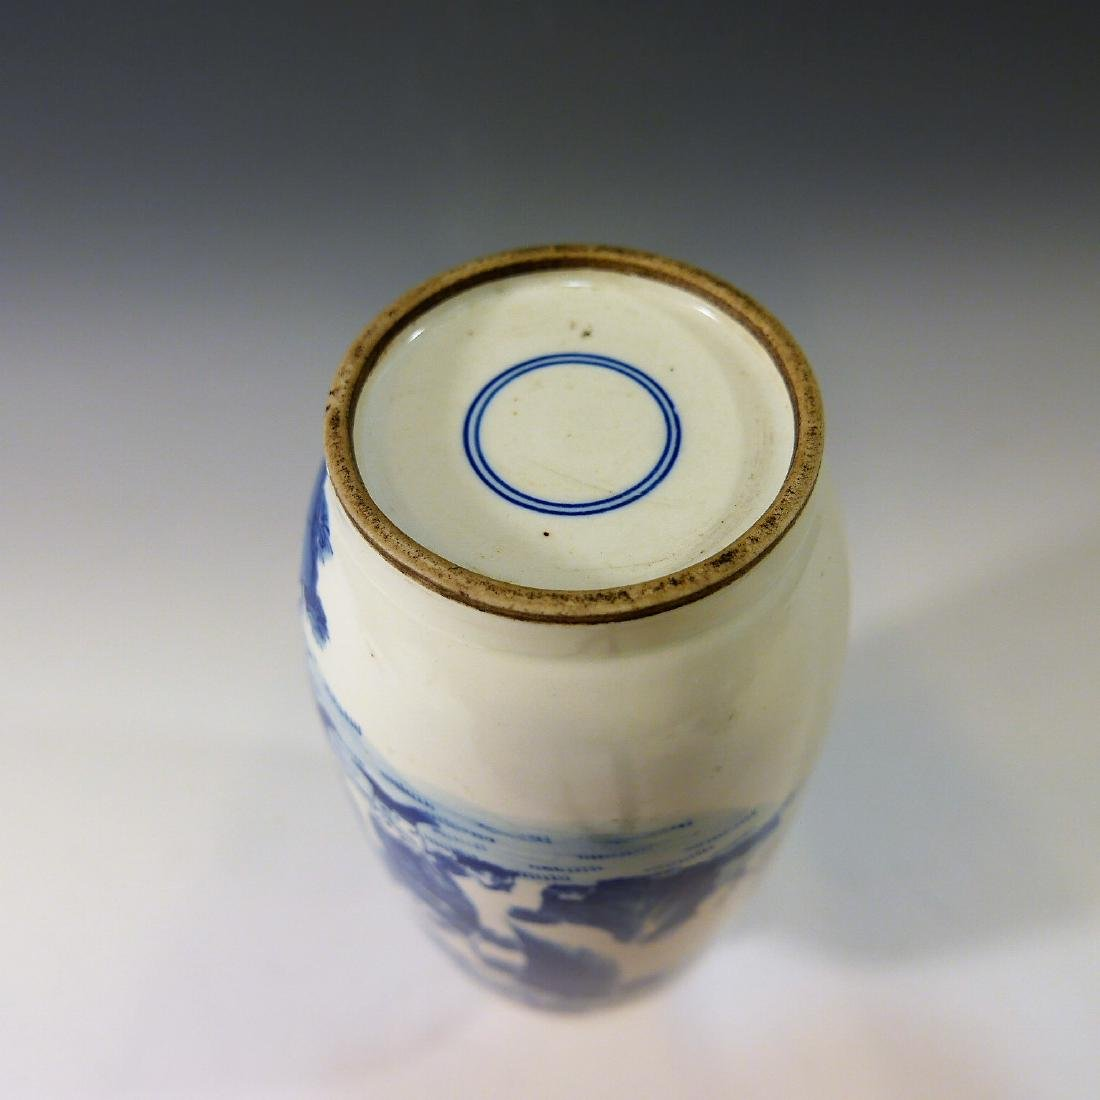 CHINESE ANTIQUE BLUE AND WHITE VASE - 18TH CENTURY - 2